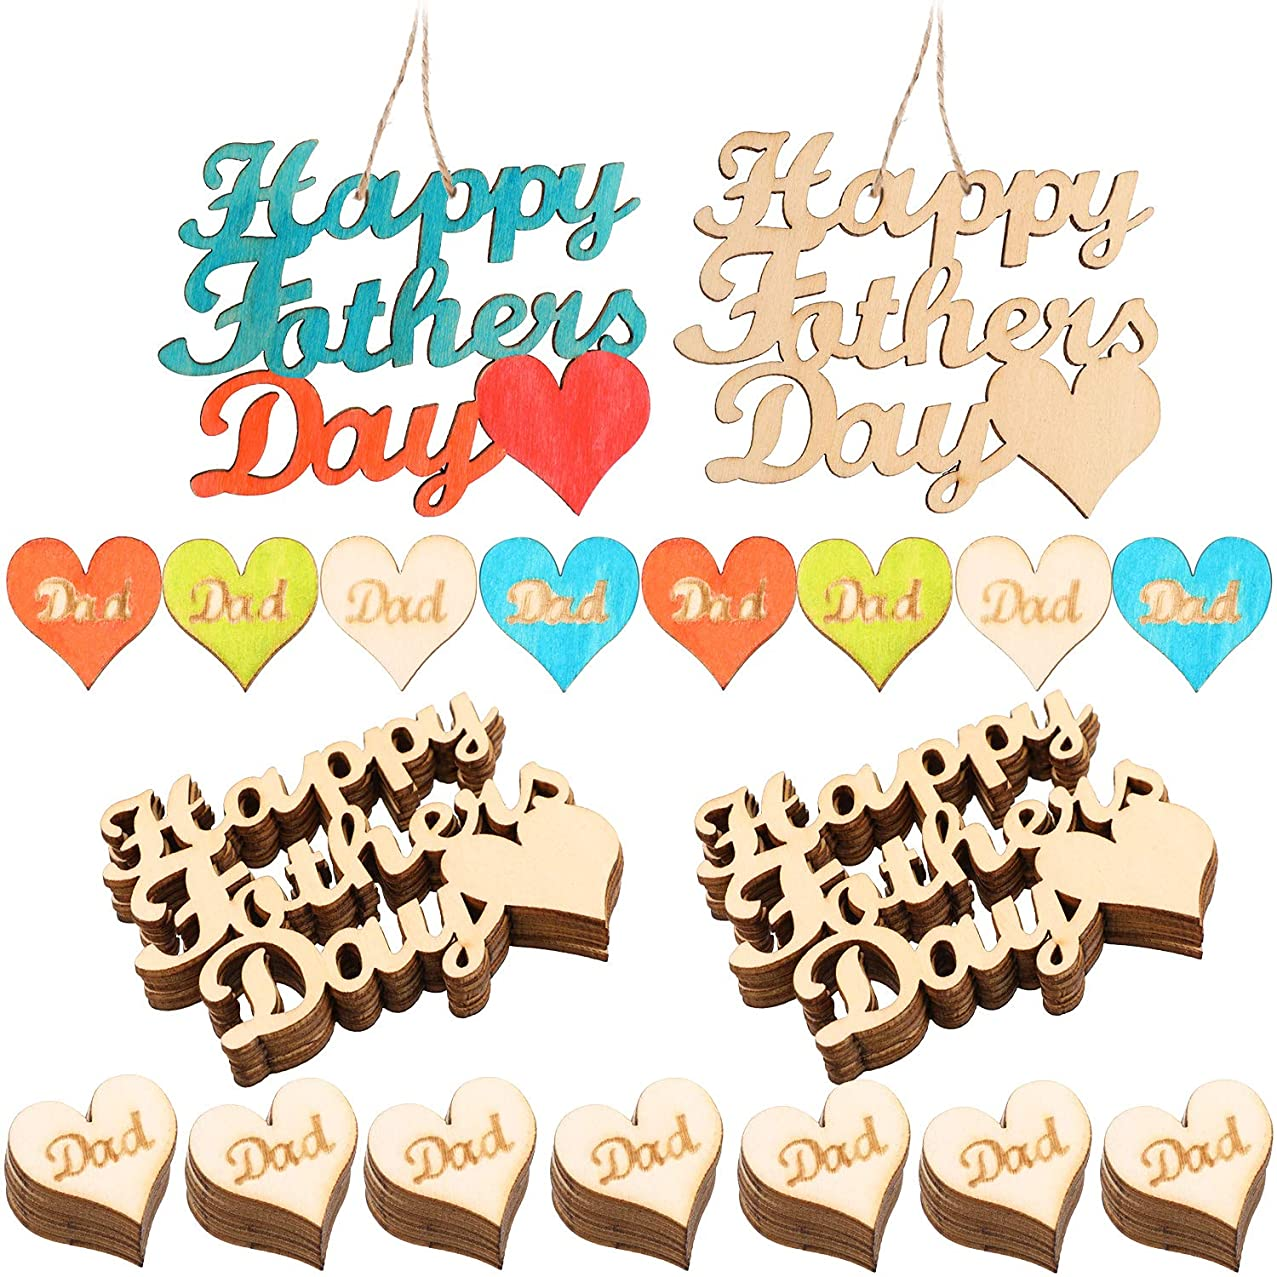 60 Pieces Fathers Day Wooden Embellishments Heart Shape Hanging Ornament Happy Fathers Day Letter Shape Wooden Ornament for Party Decoration and Gift